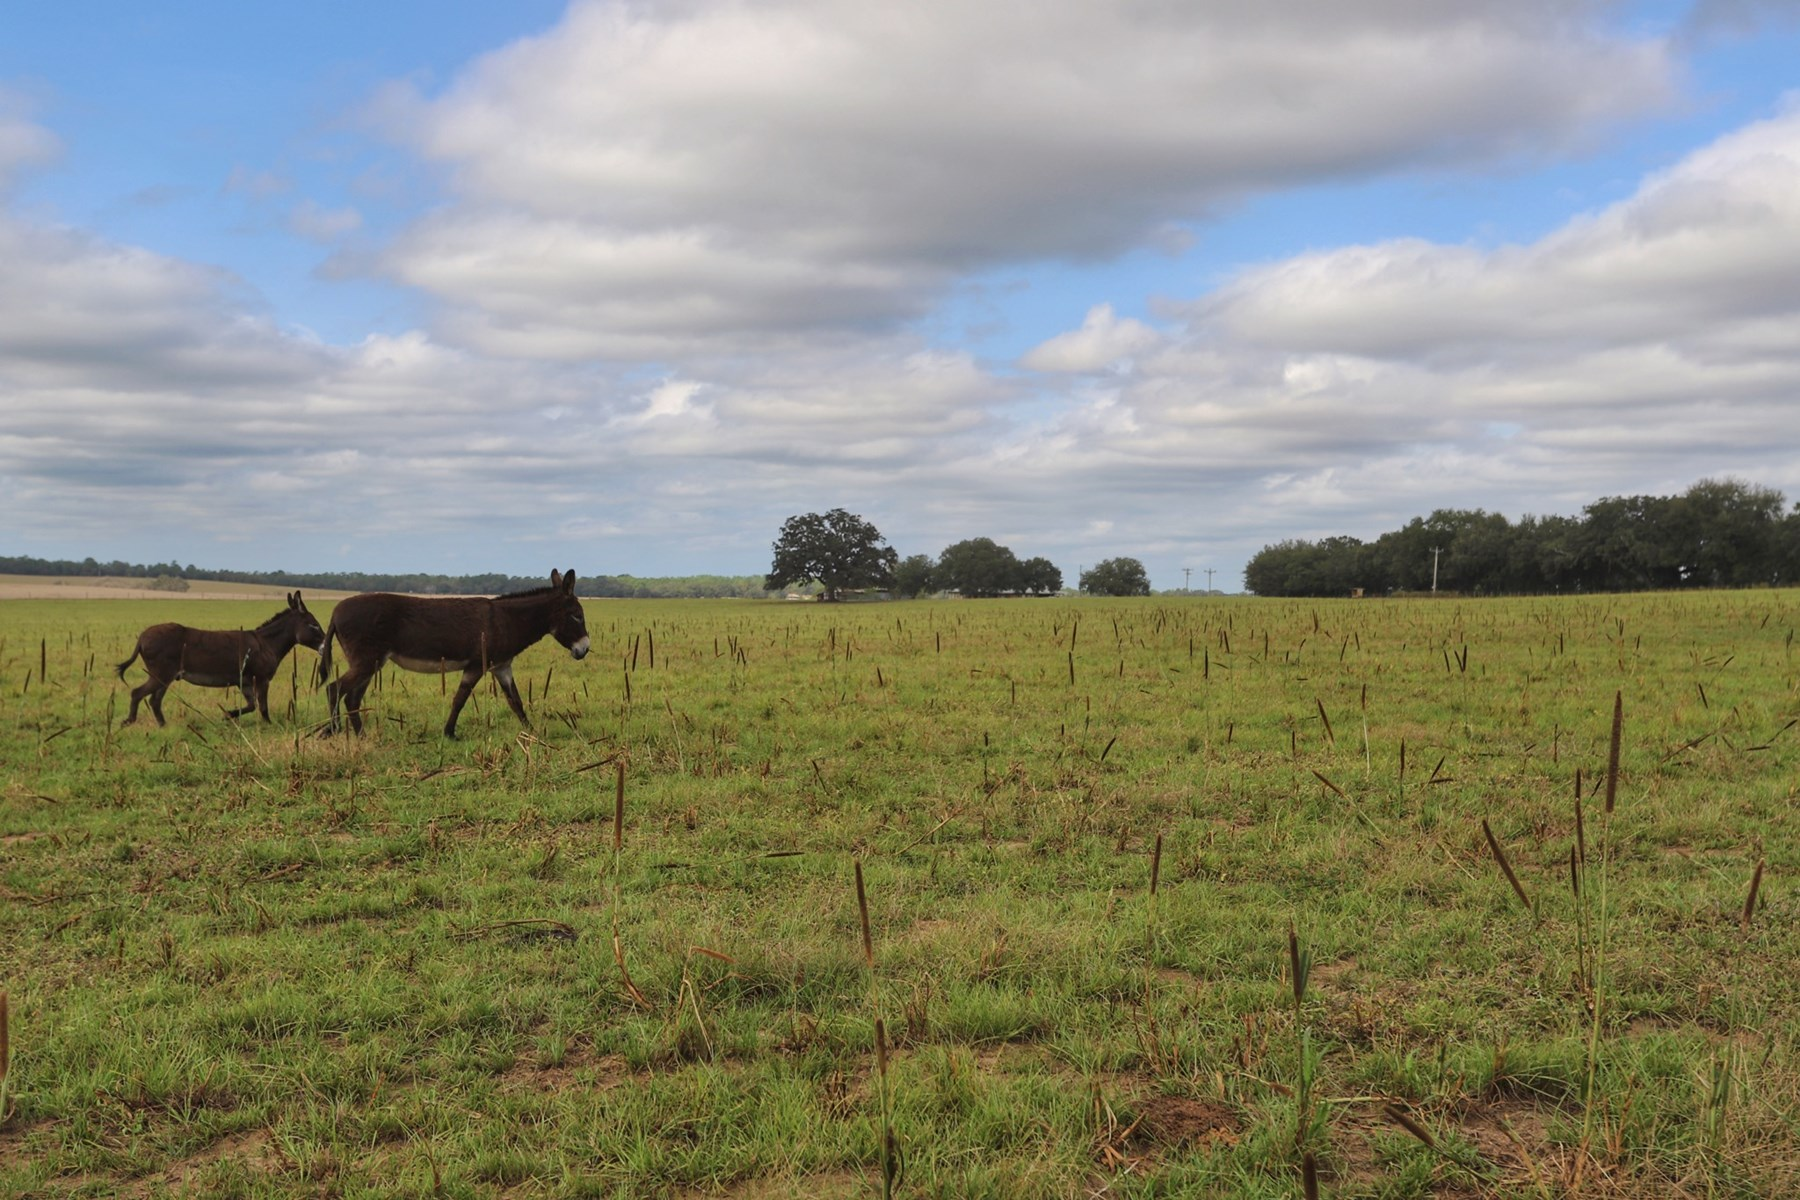 HORSE/CATTLE FARM LOCATED 15 MILES FROM OCALA